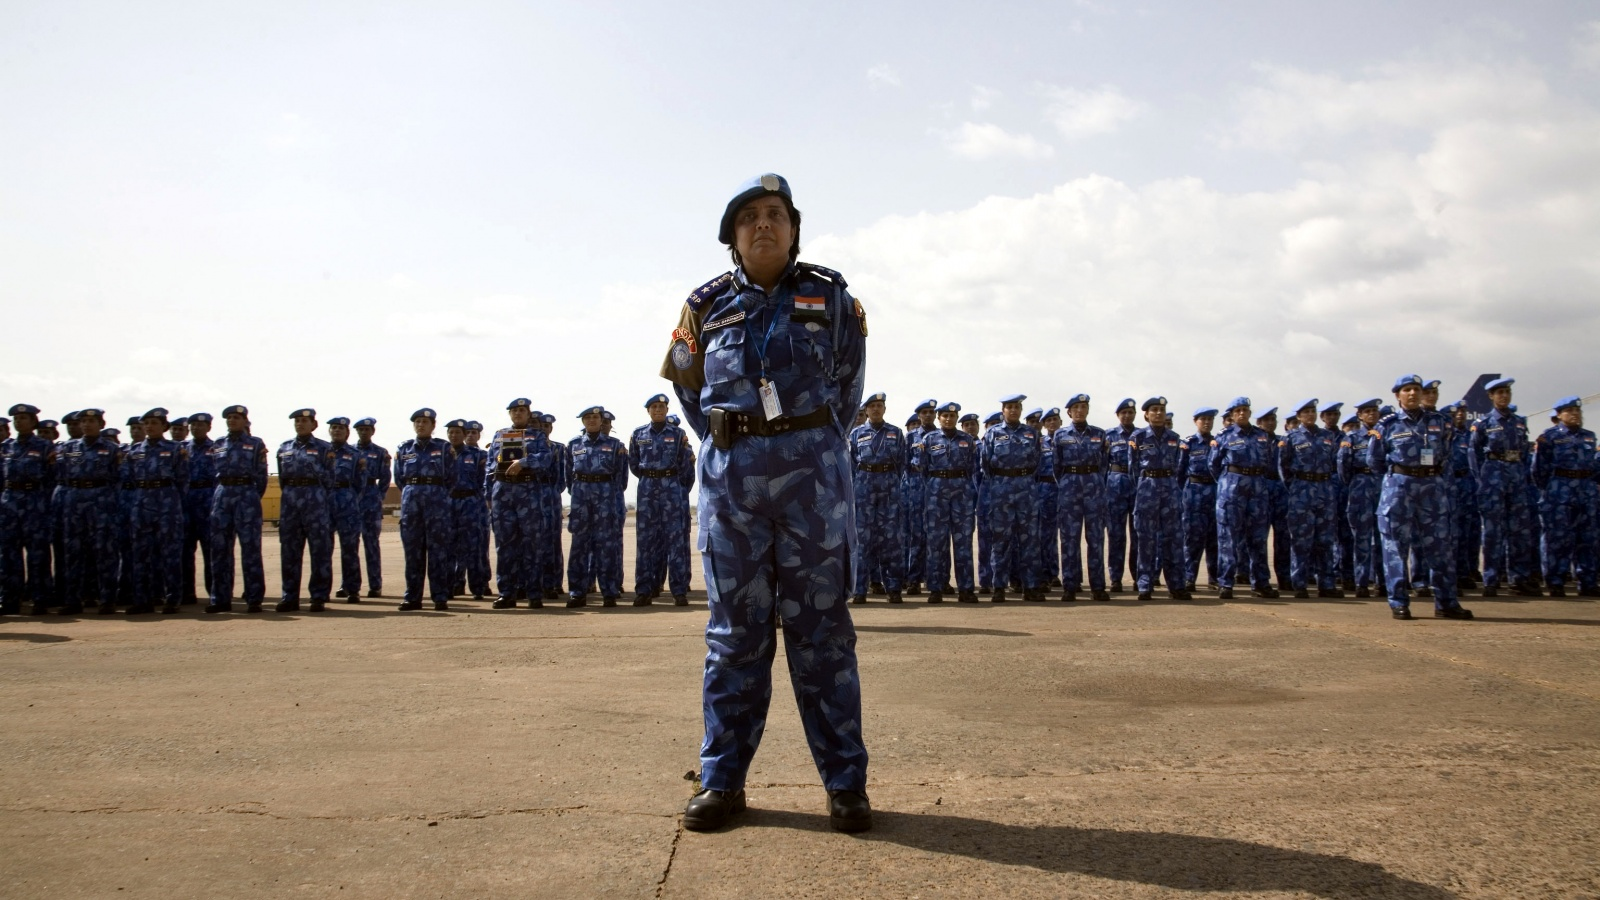 An Indian officer from the first all-female unit of United Nations peacekeepers stands in front of troops as they arrive at Roberts International Airport outside Liberia's capital Monrovia January 30, 2007. (Christopher Herwig/Reuters)